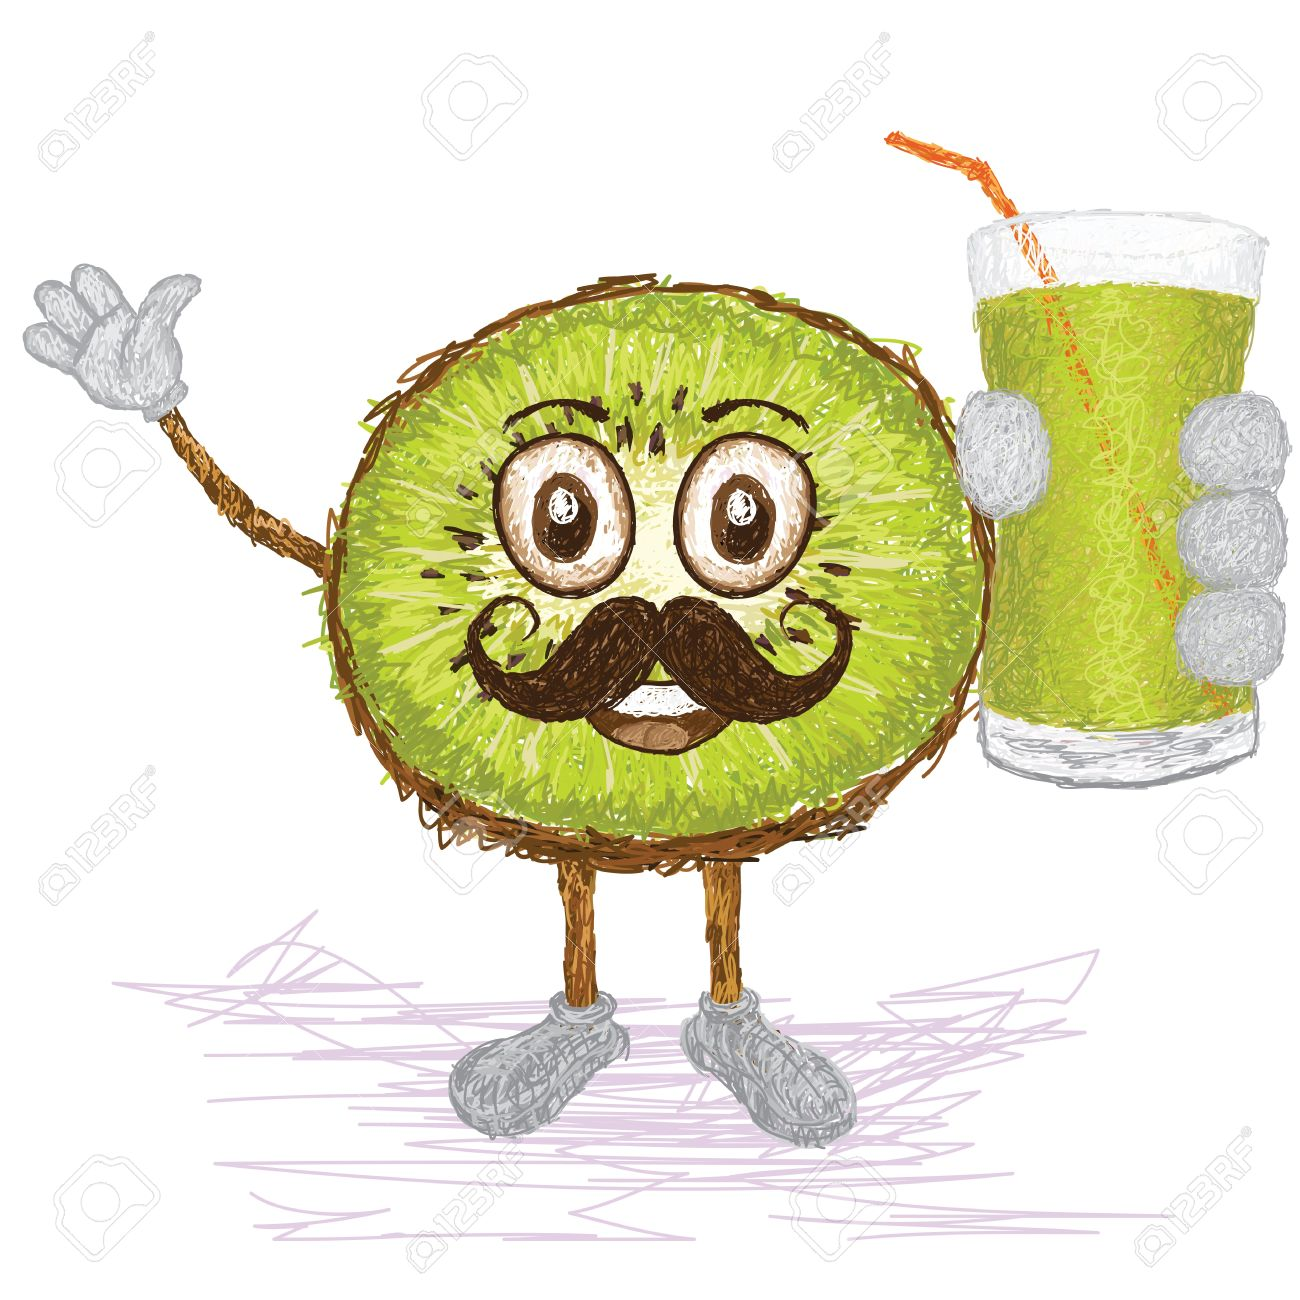 Unique style illustration of funny happy cartoon green kiwi